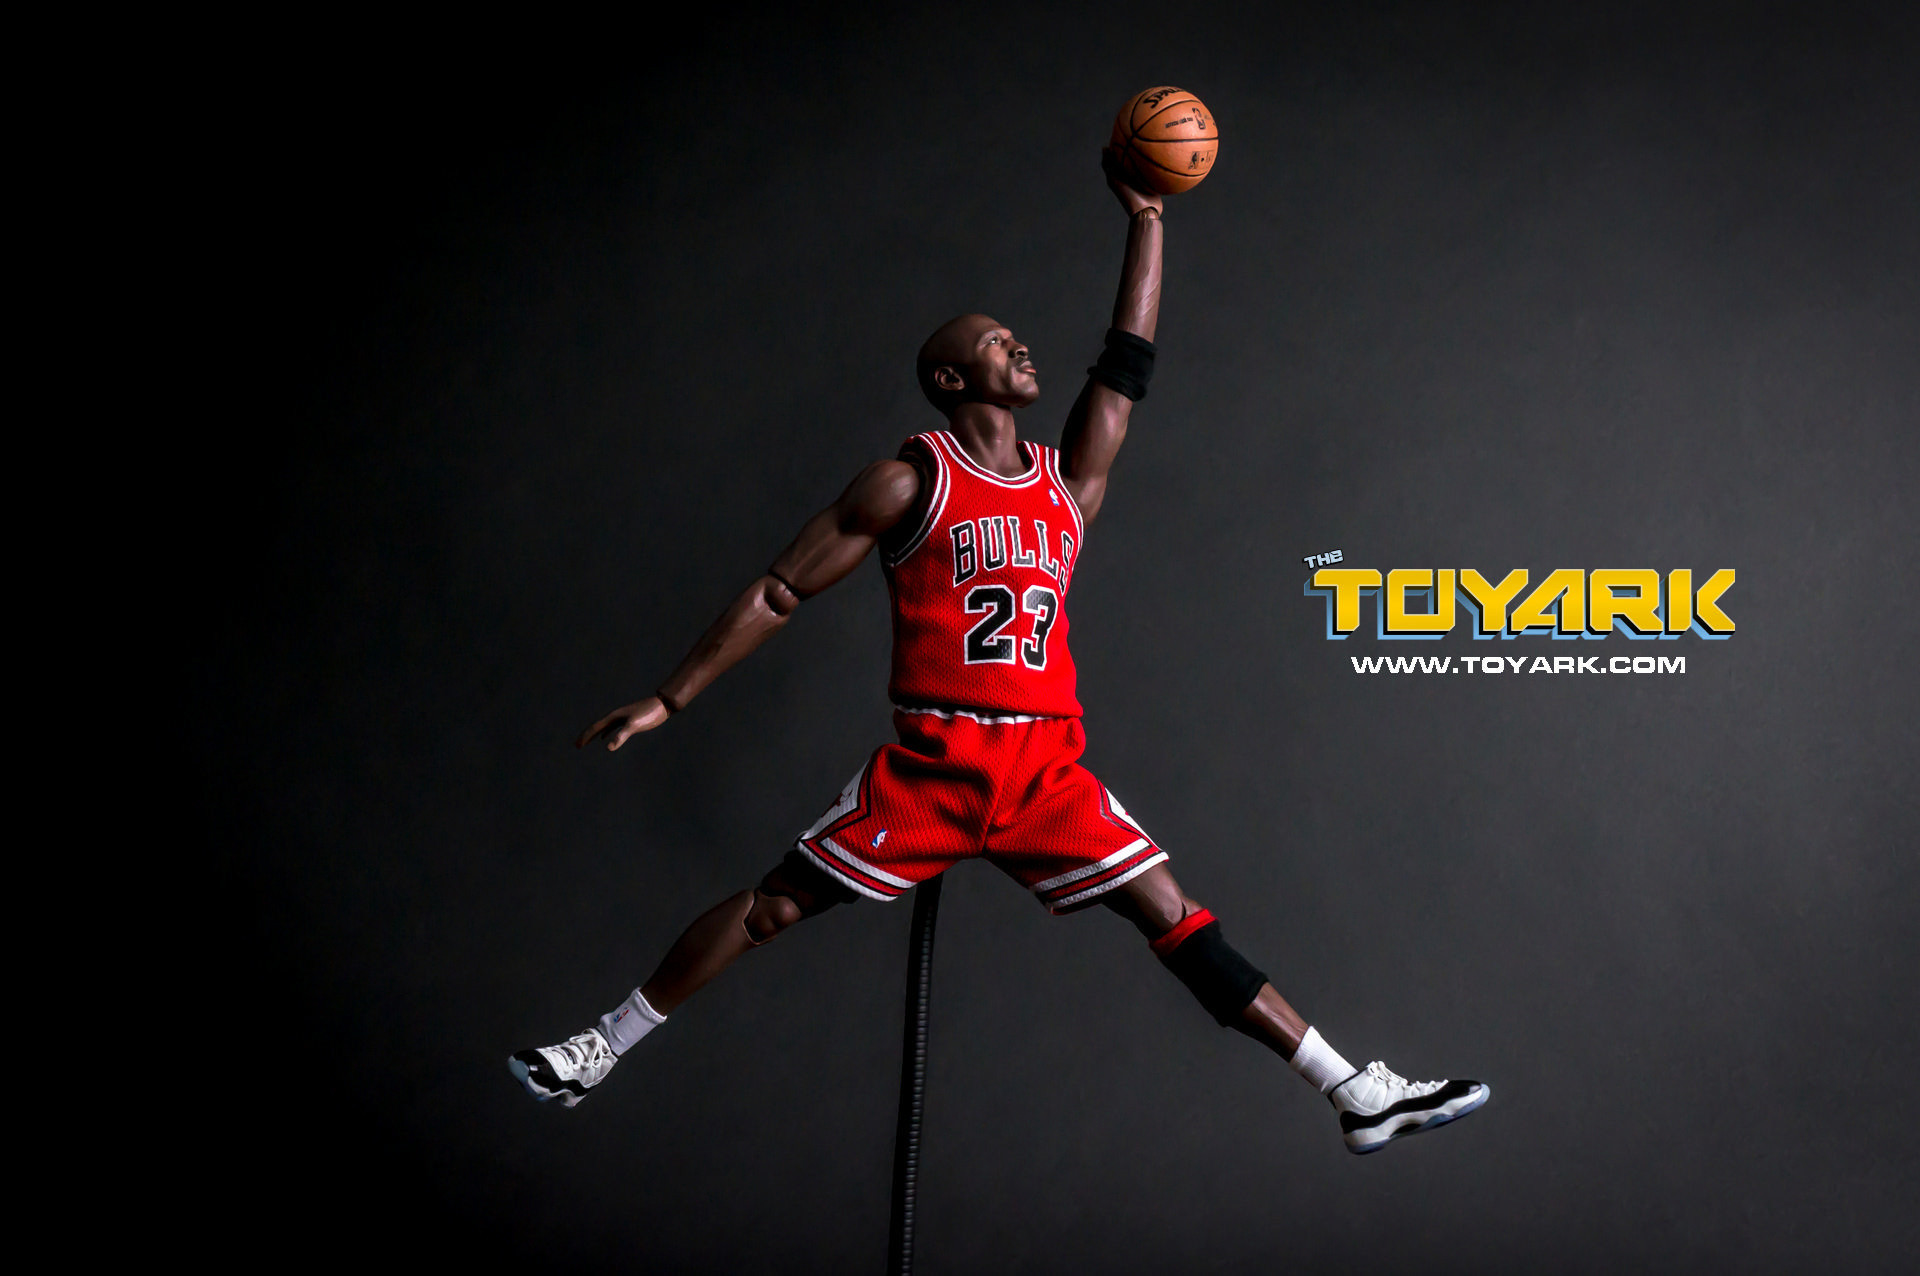 1920x1276 1920x1080 White Jordan Shoes Wallpaper Classic Decoration Idaes Adjustable  Collection Backgrounds Images